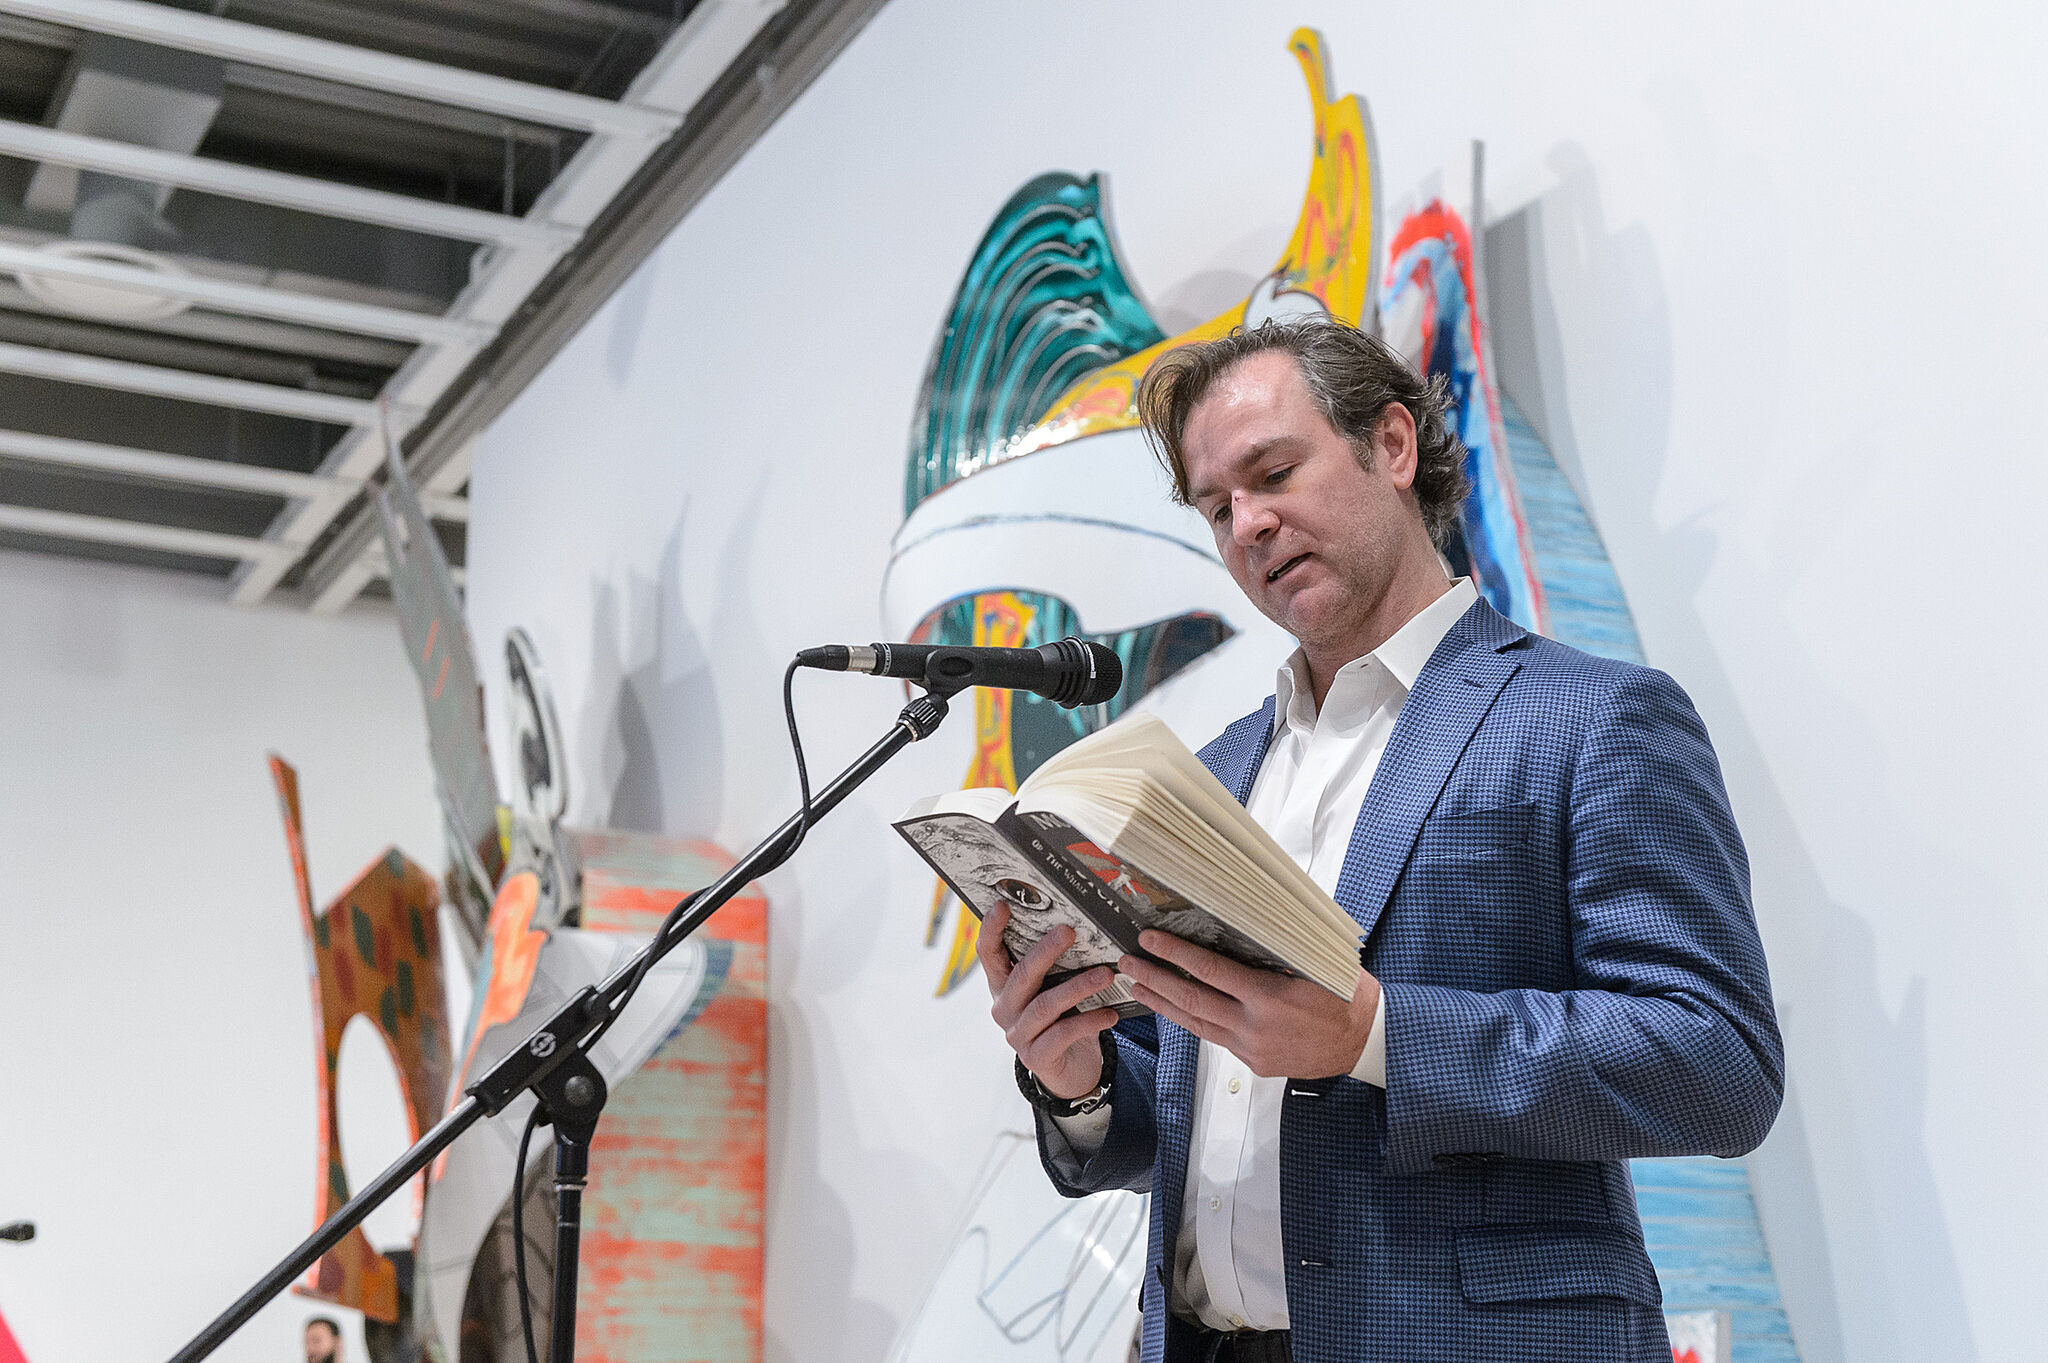 Man in suit reading from Moby Dick.